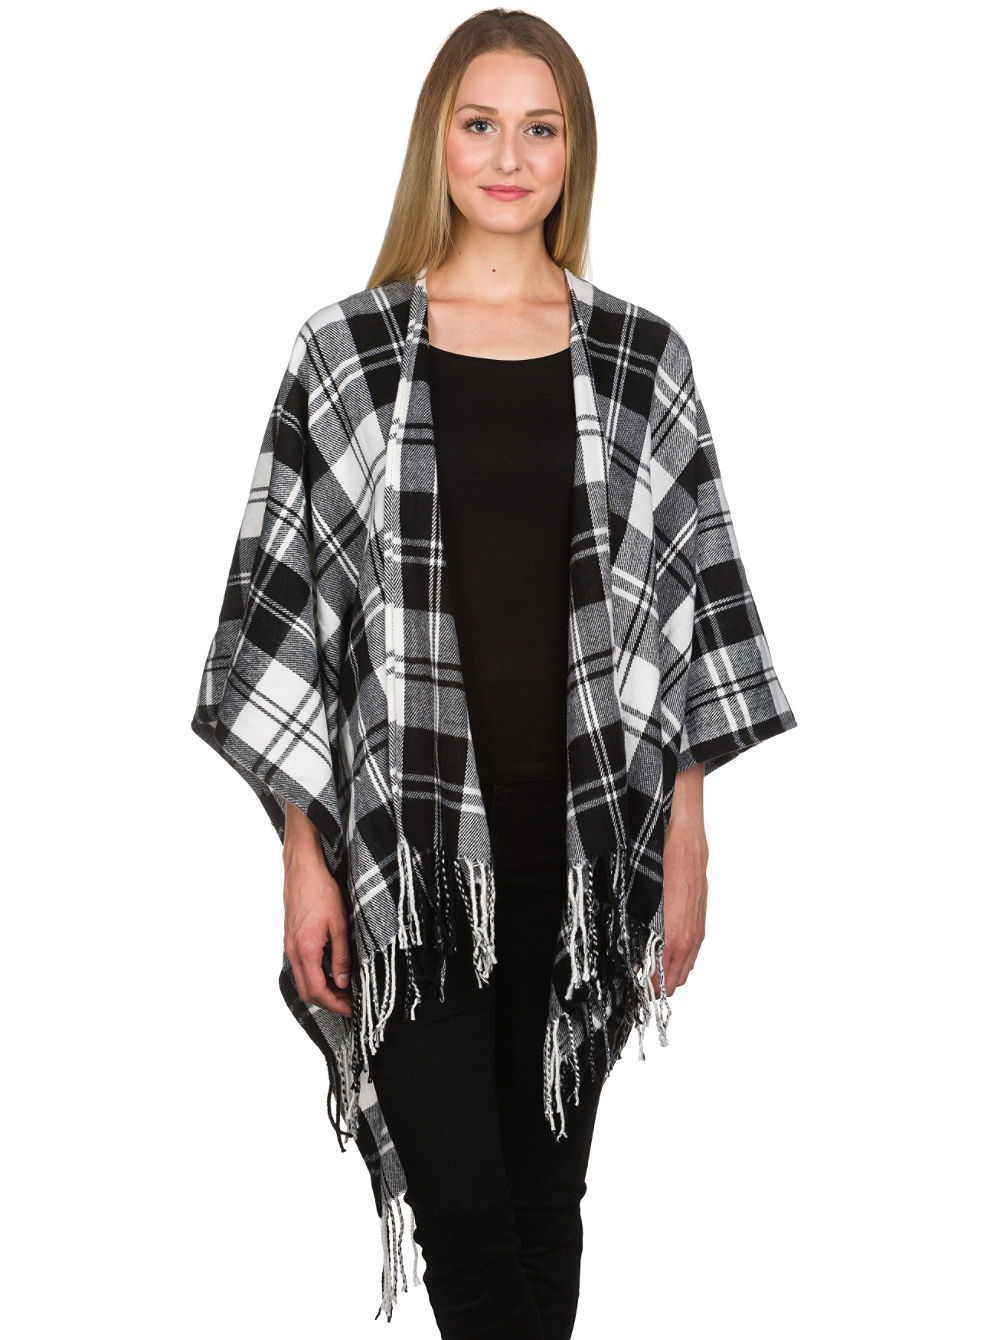 Kelley Blk&Wht Plaid Kimino